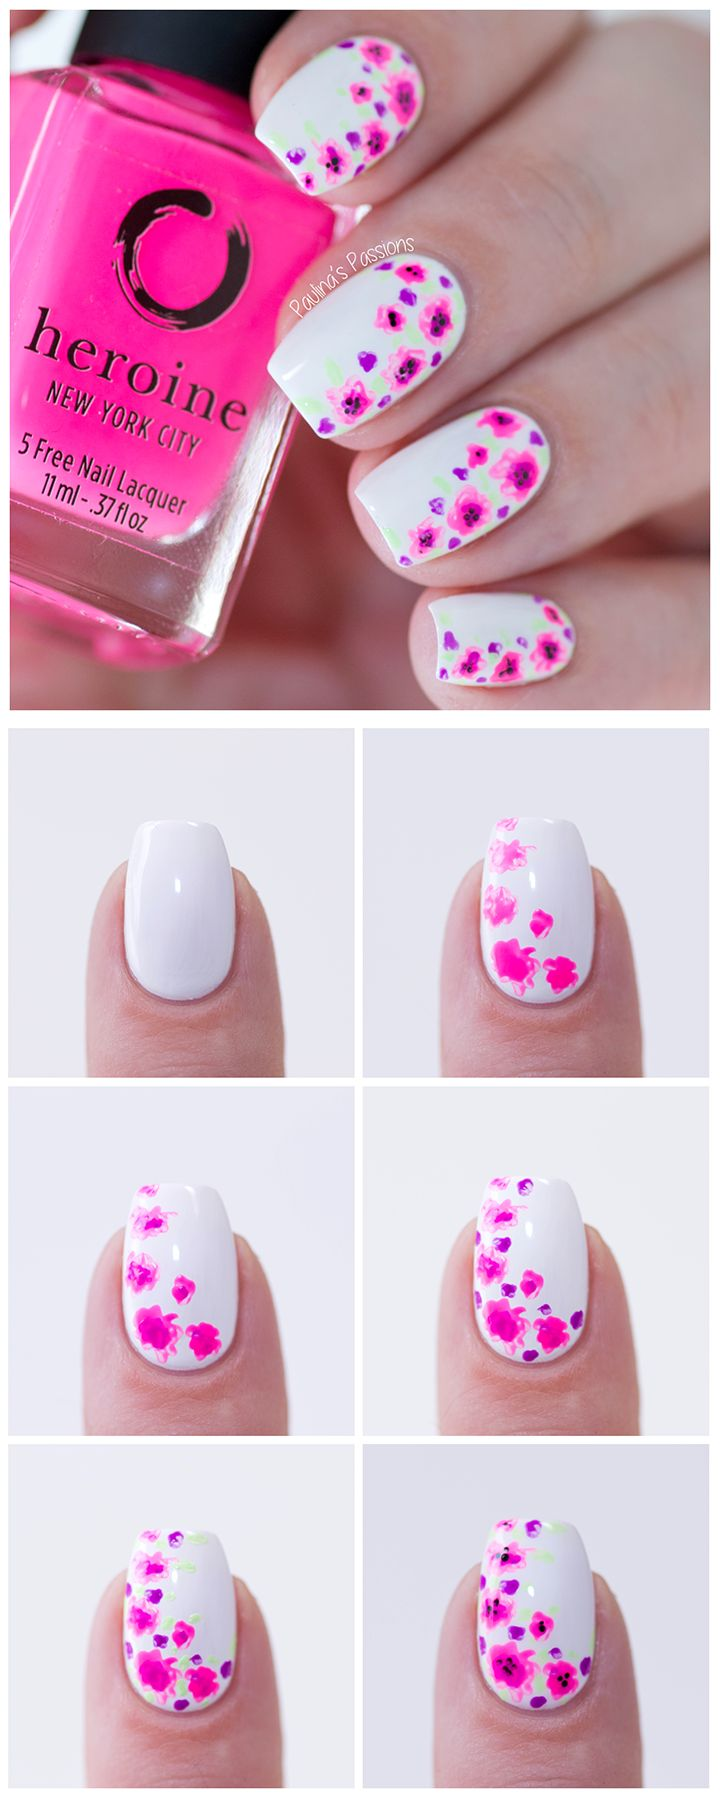 147 best Nagel Design images on Pinterest | Nail scissors ...